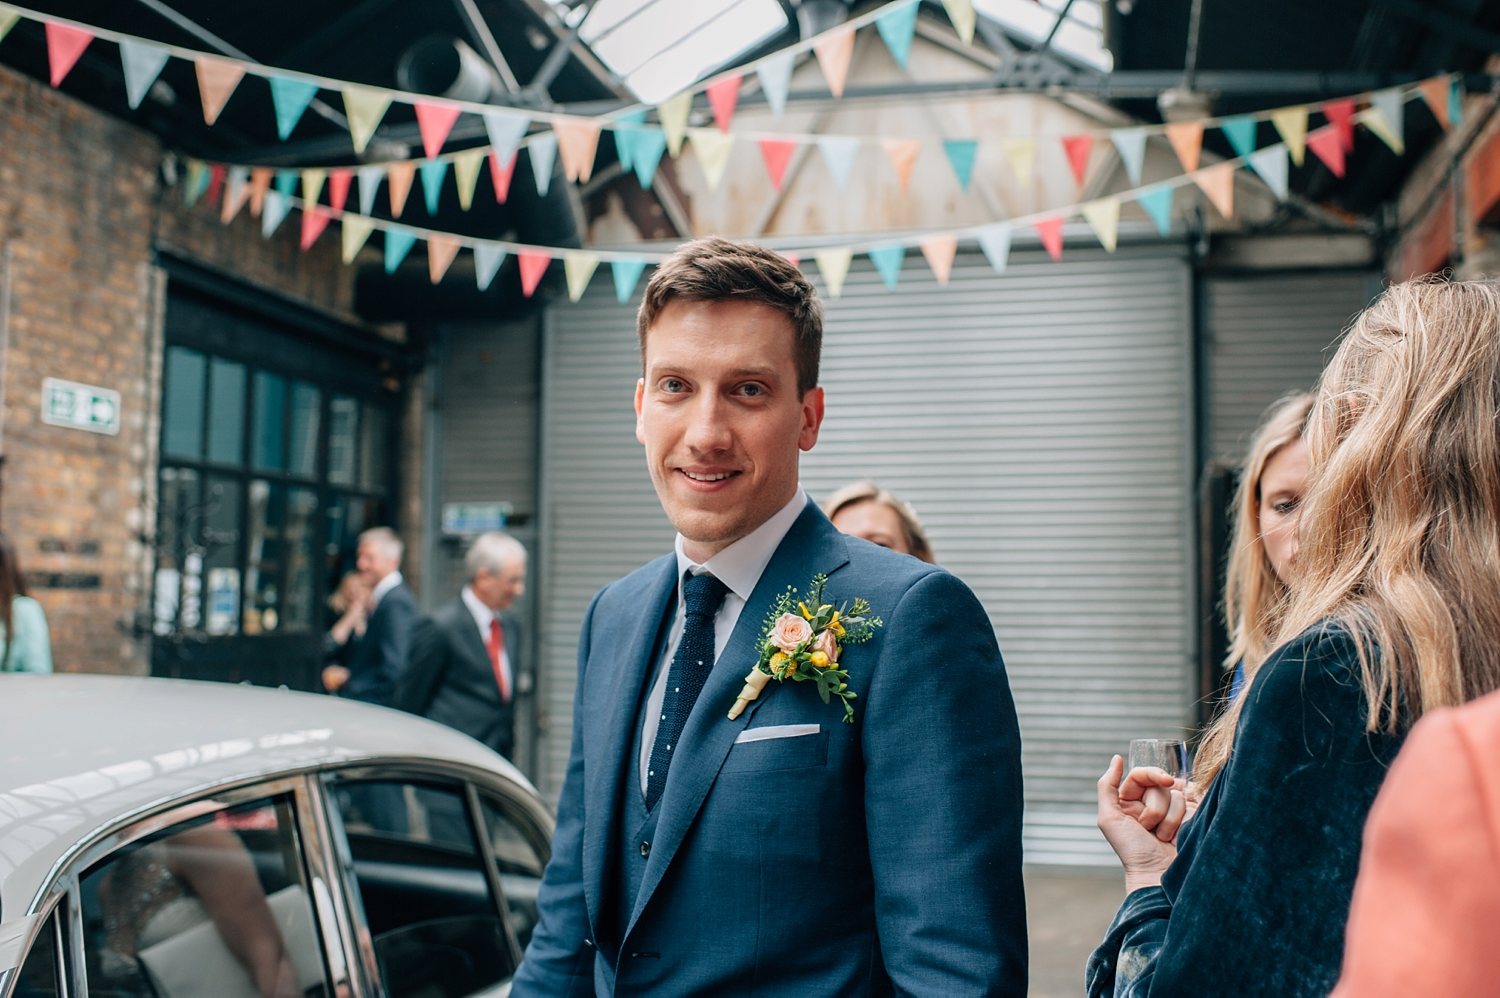 0107-lisa-devine-alternative-wedding-photography-london-hackney-dalston-london-photography-townhall-hotel.JPG